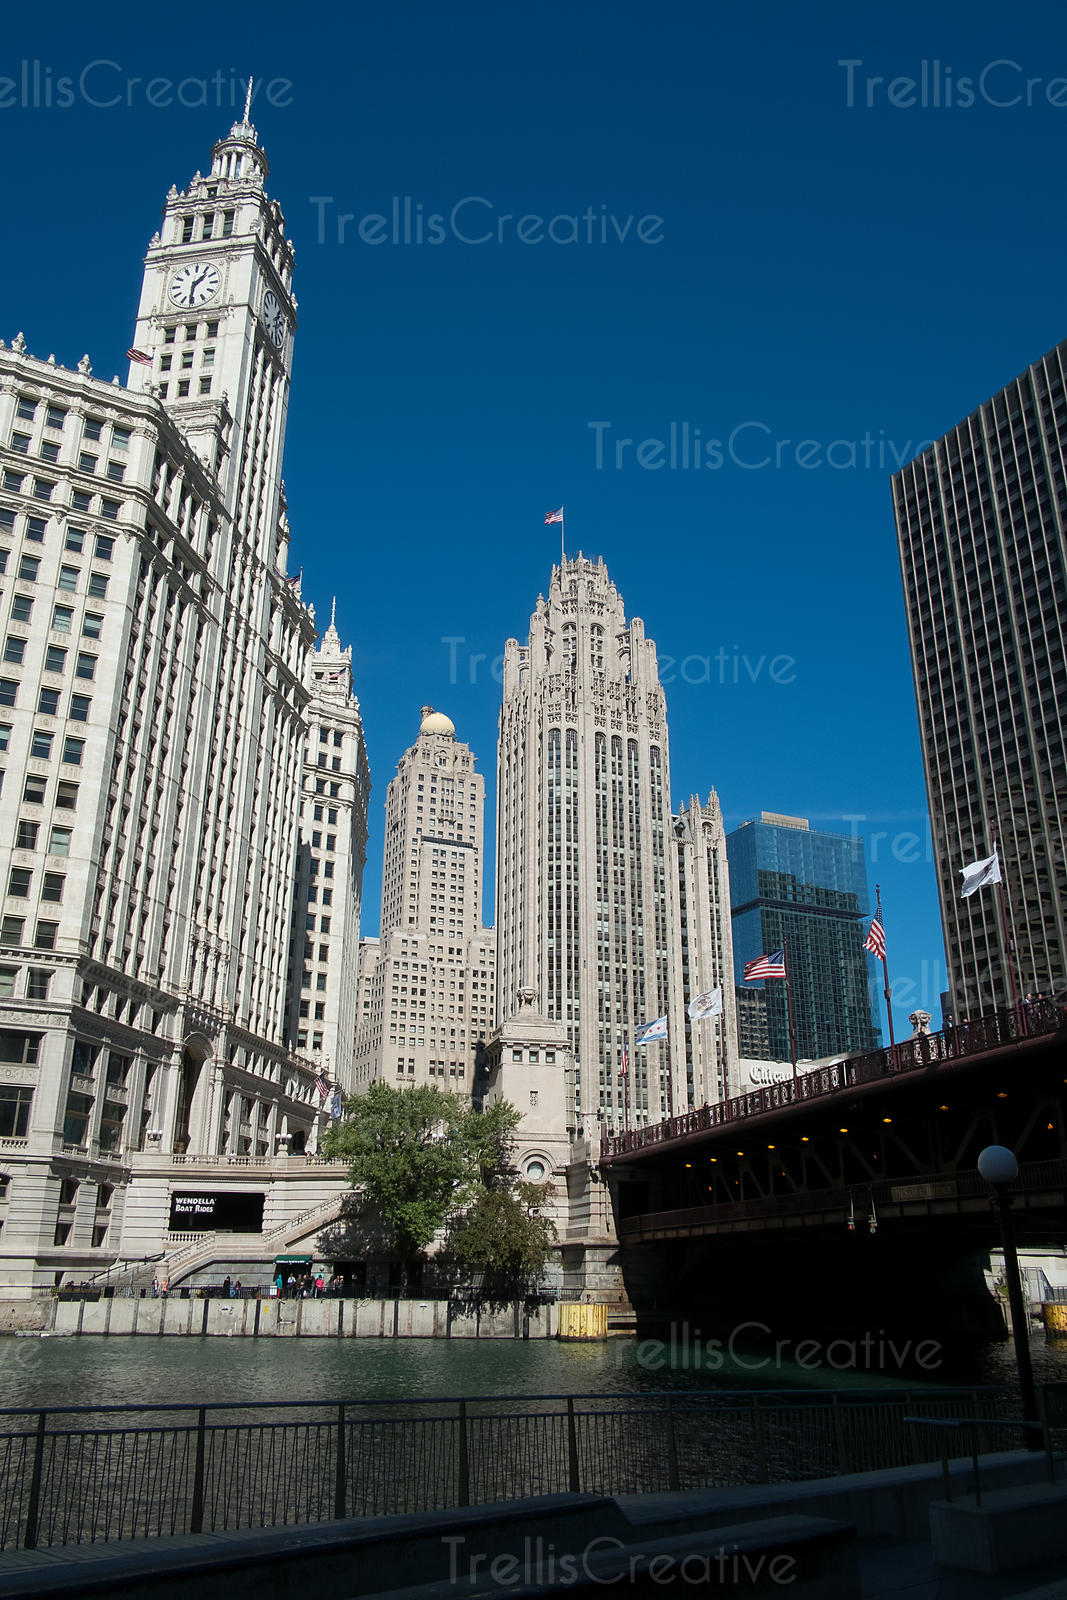 The Wrigley Building and Tribune Tower at riverbank